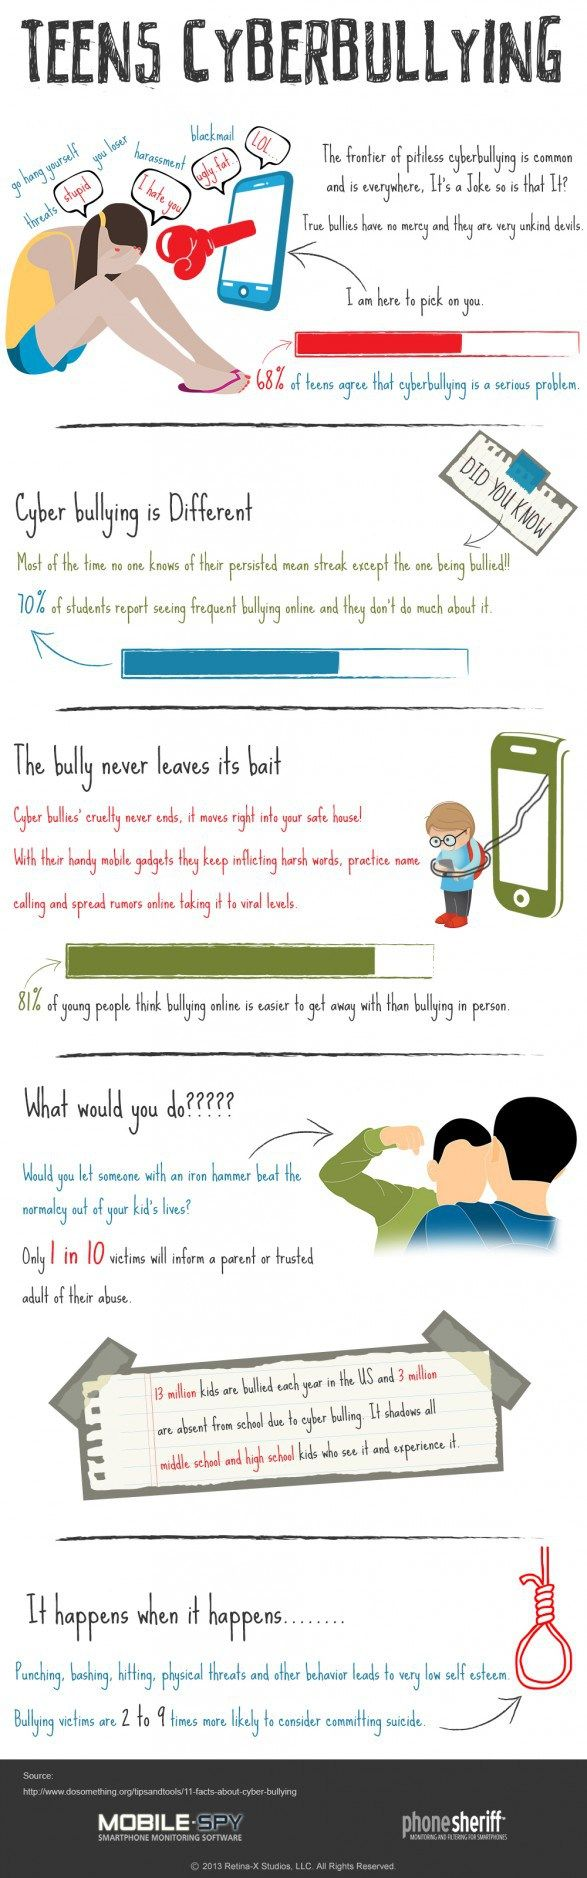 Cyberbullying infographic - Parents